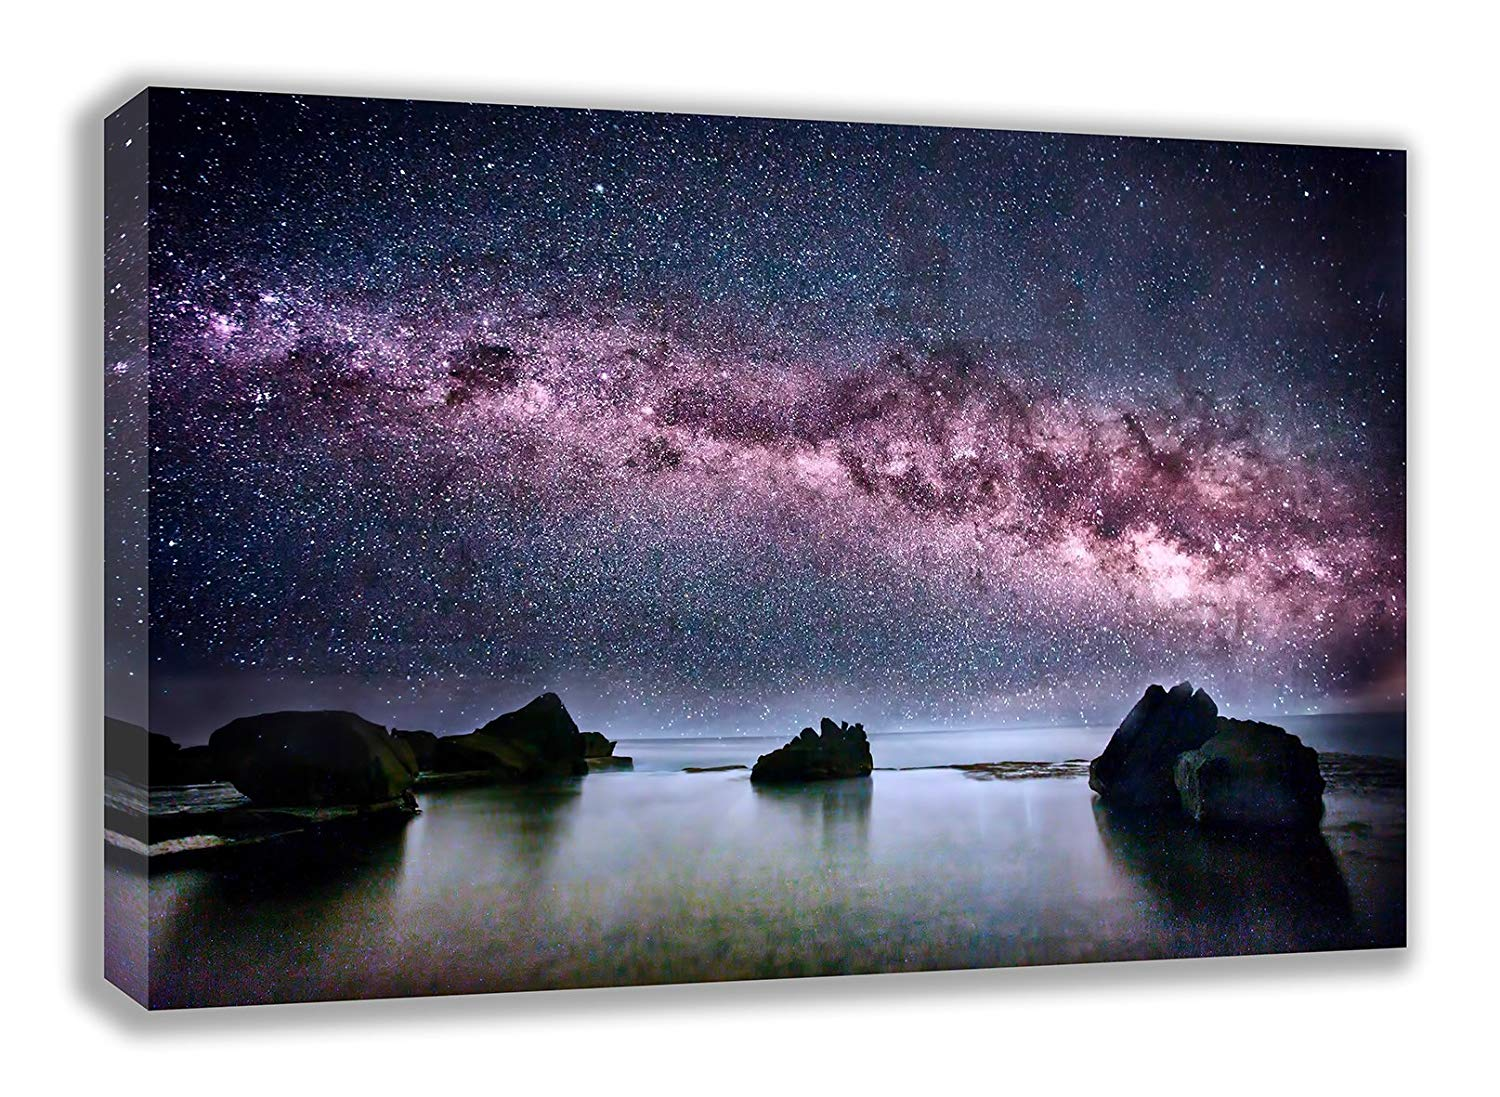 "THE MILKY WAY GALAXY ABOVE THE OCEAN SPACE CANVAS WALL ART (44X26"") Image"